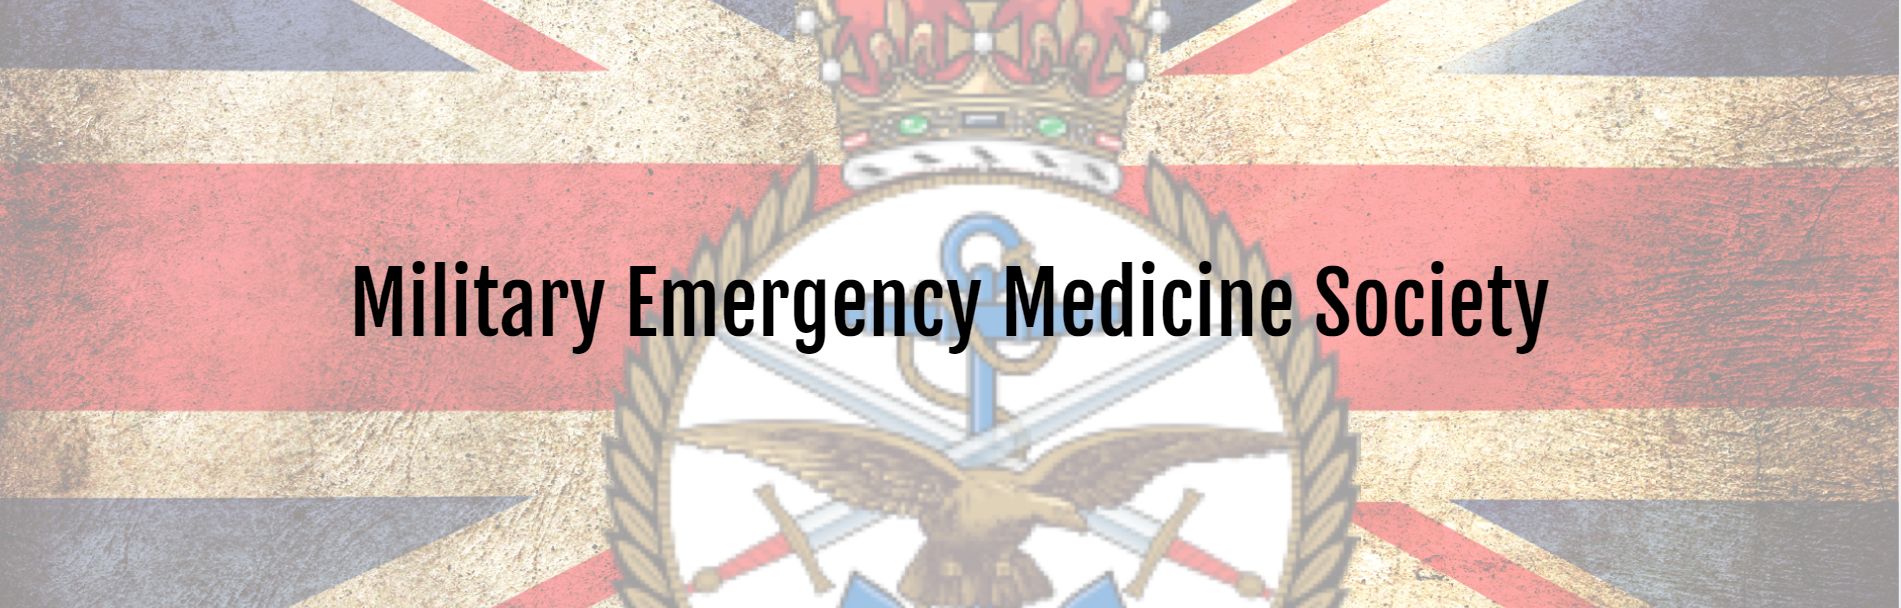 MIL PHEC Conference 2021 (Military Emergency Medicine Society)